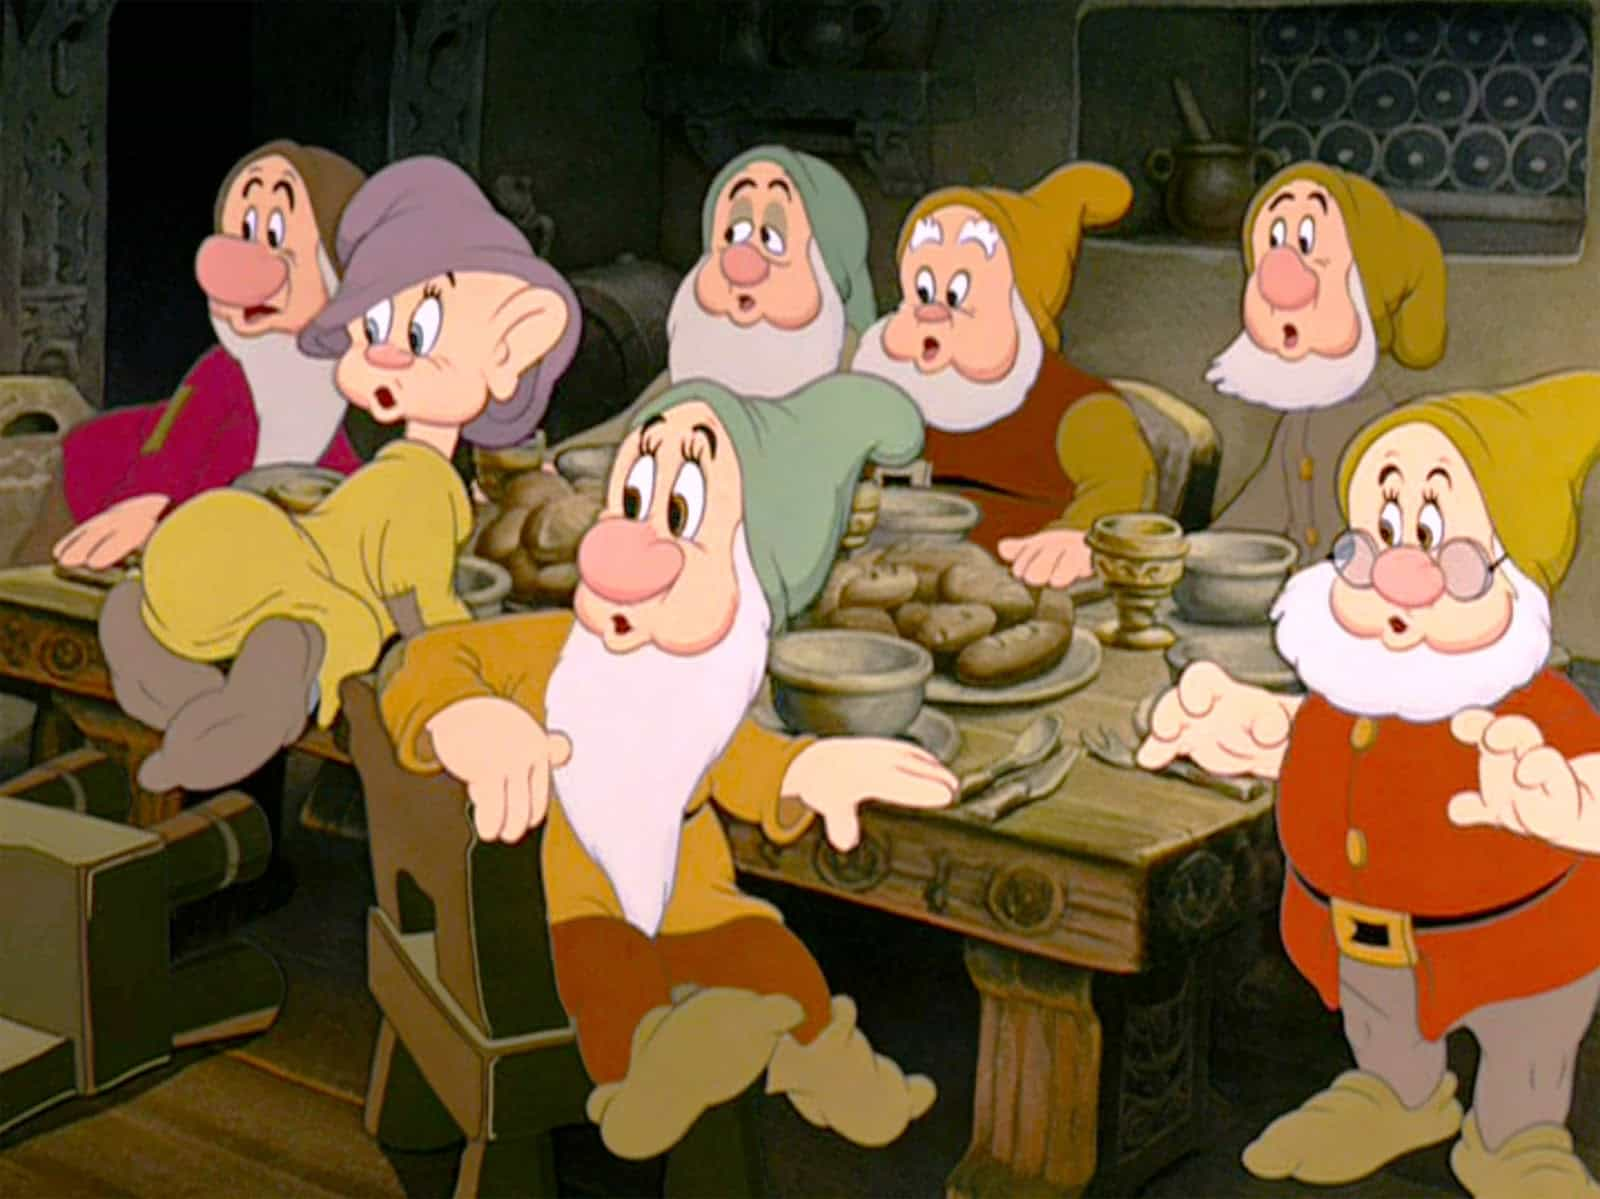 Pictures of snow white and seven dwarfs